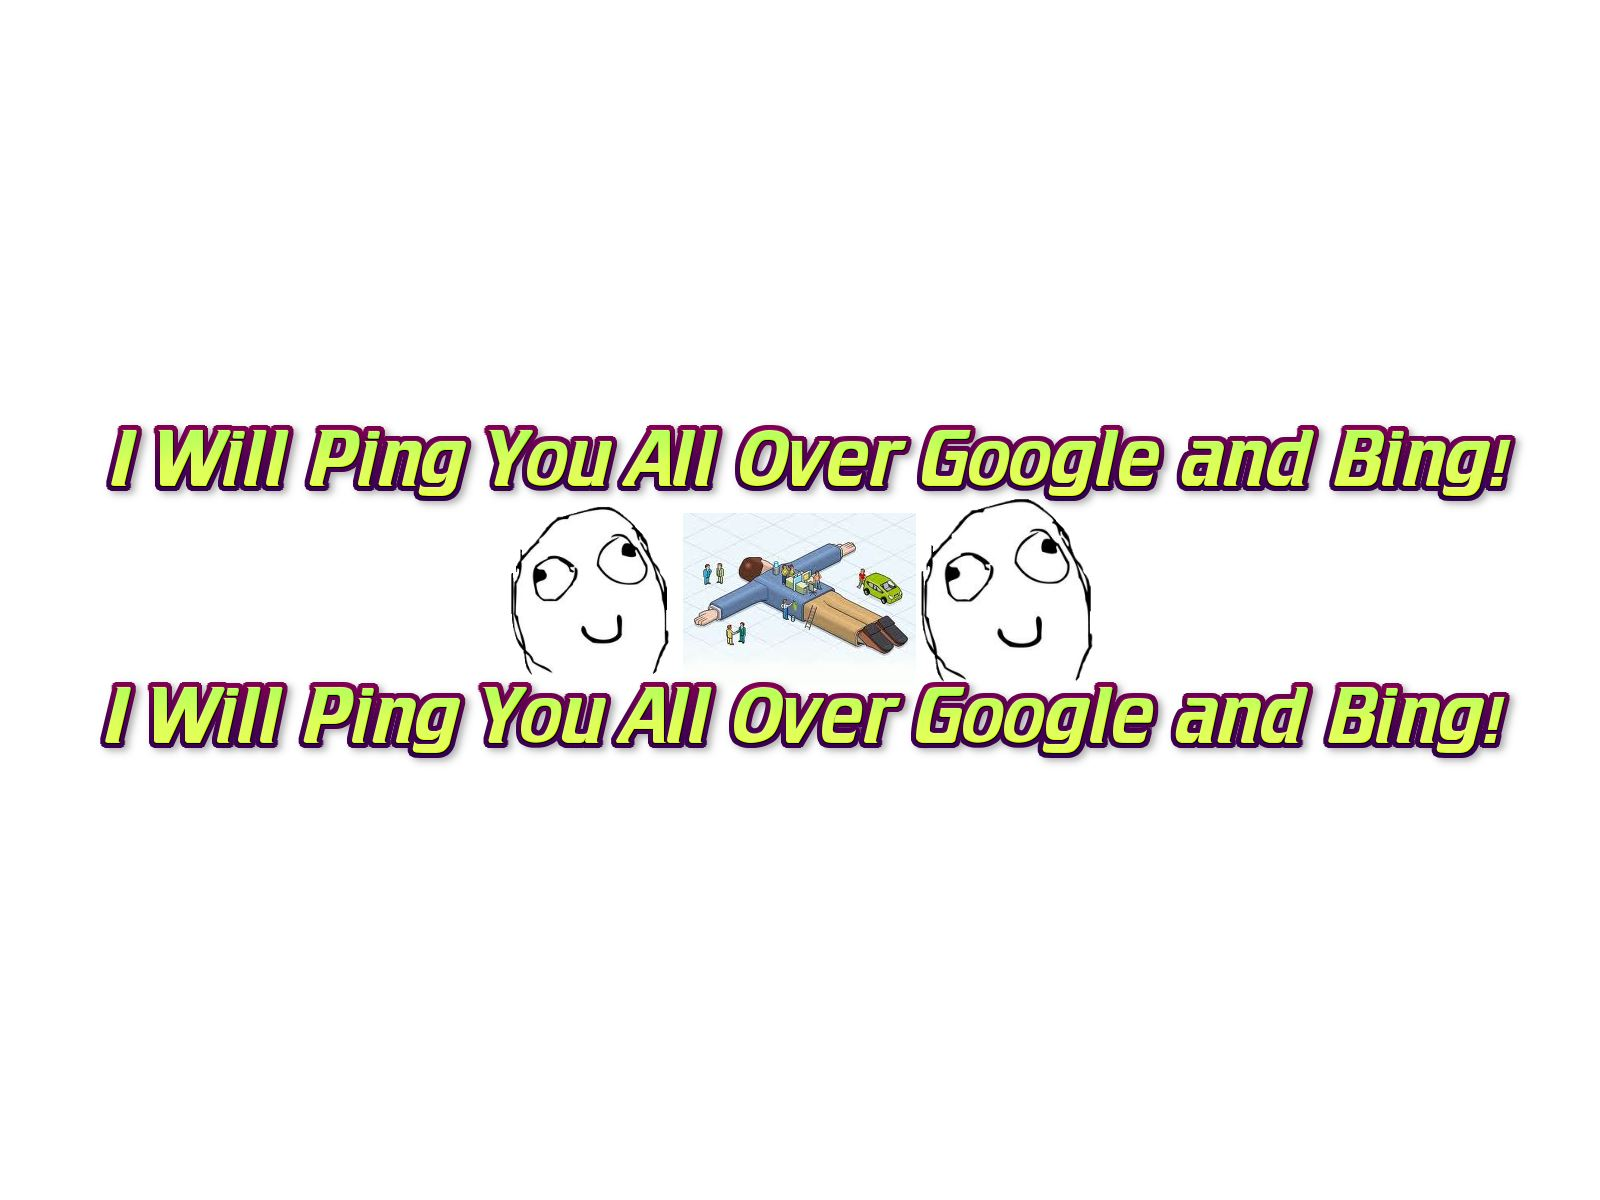 Ping Your Website On Google And Bing